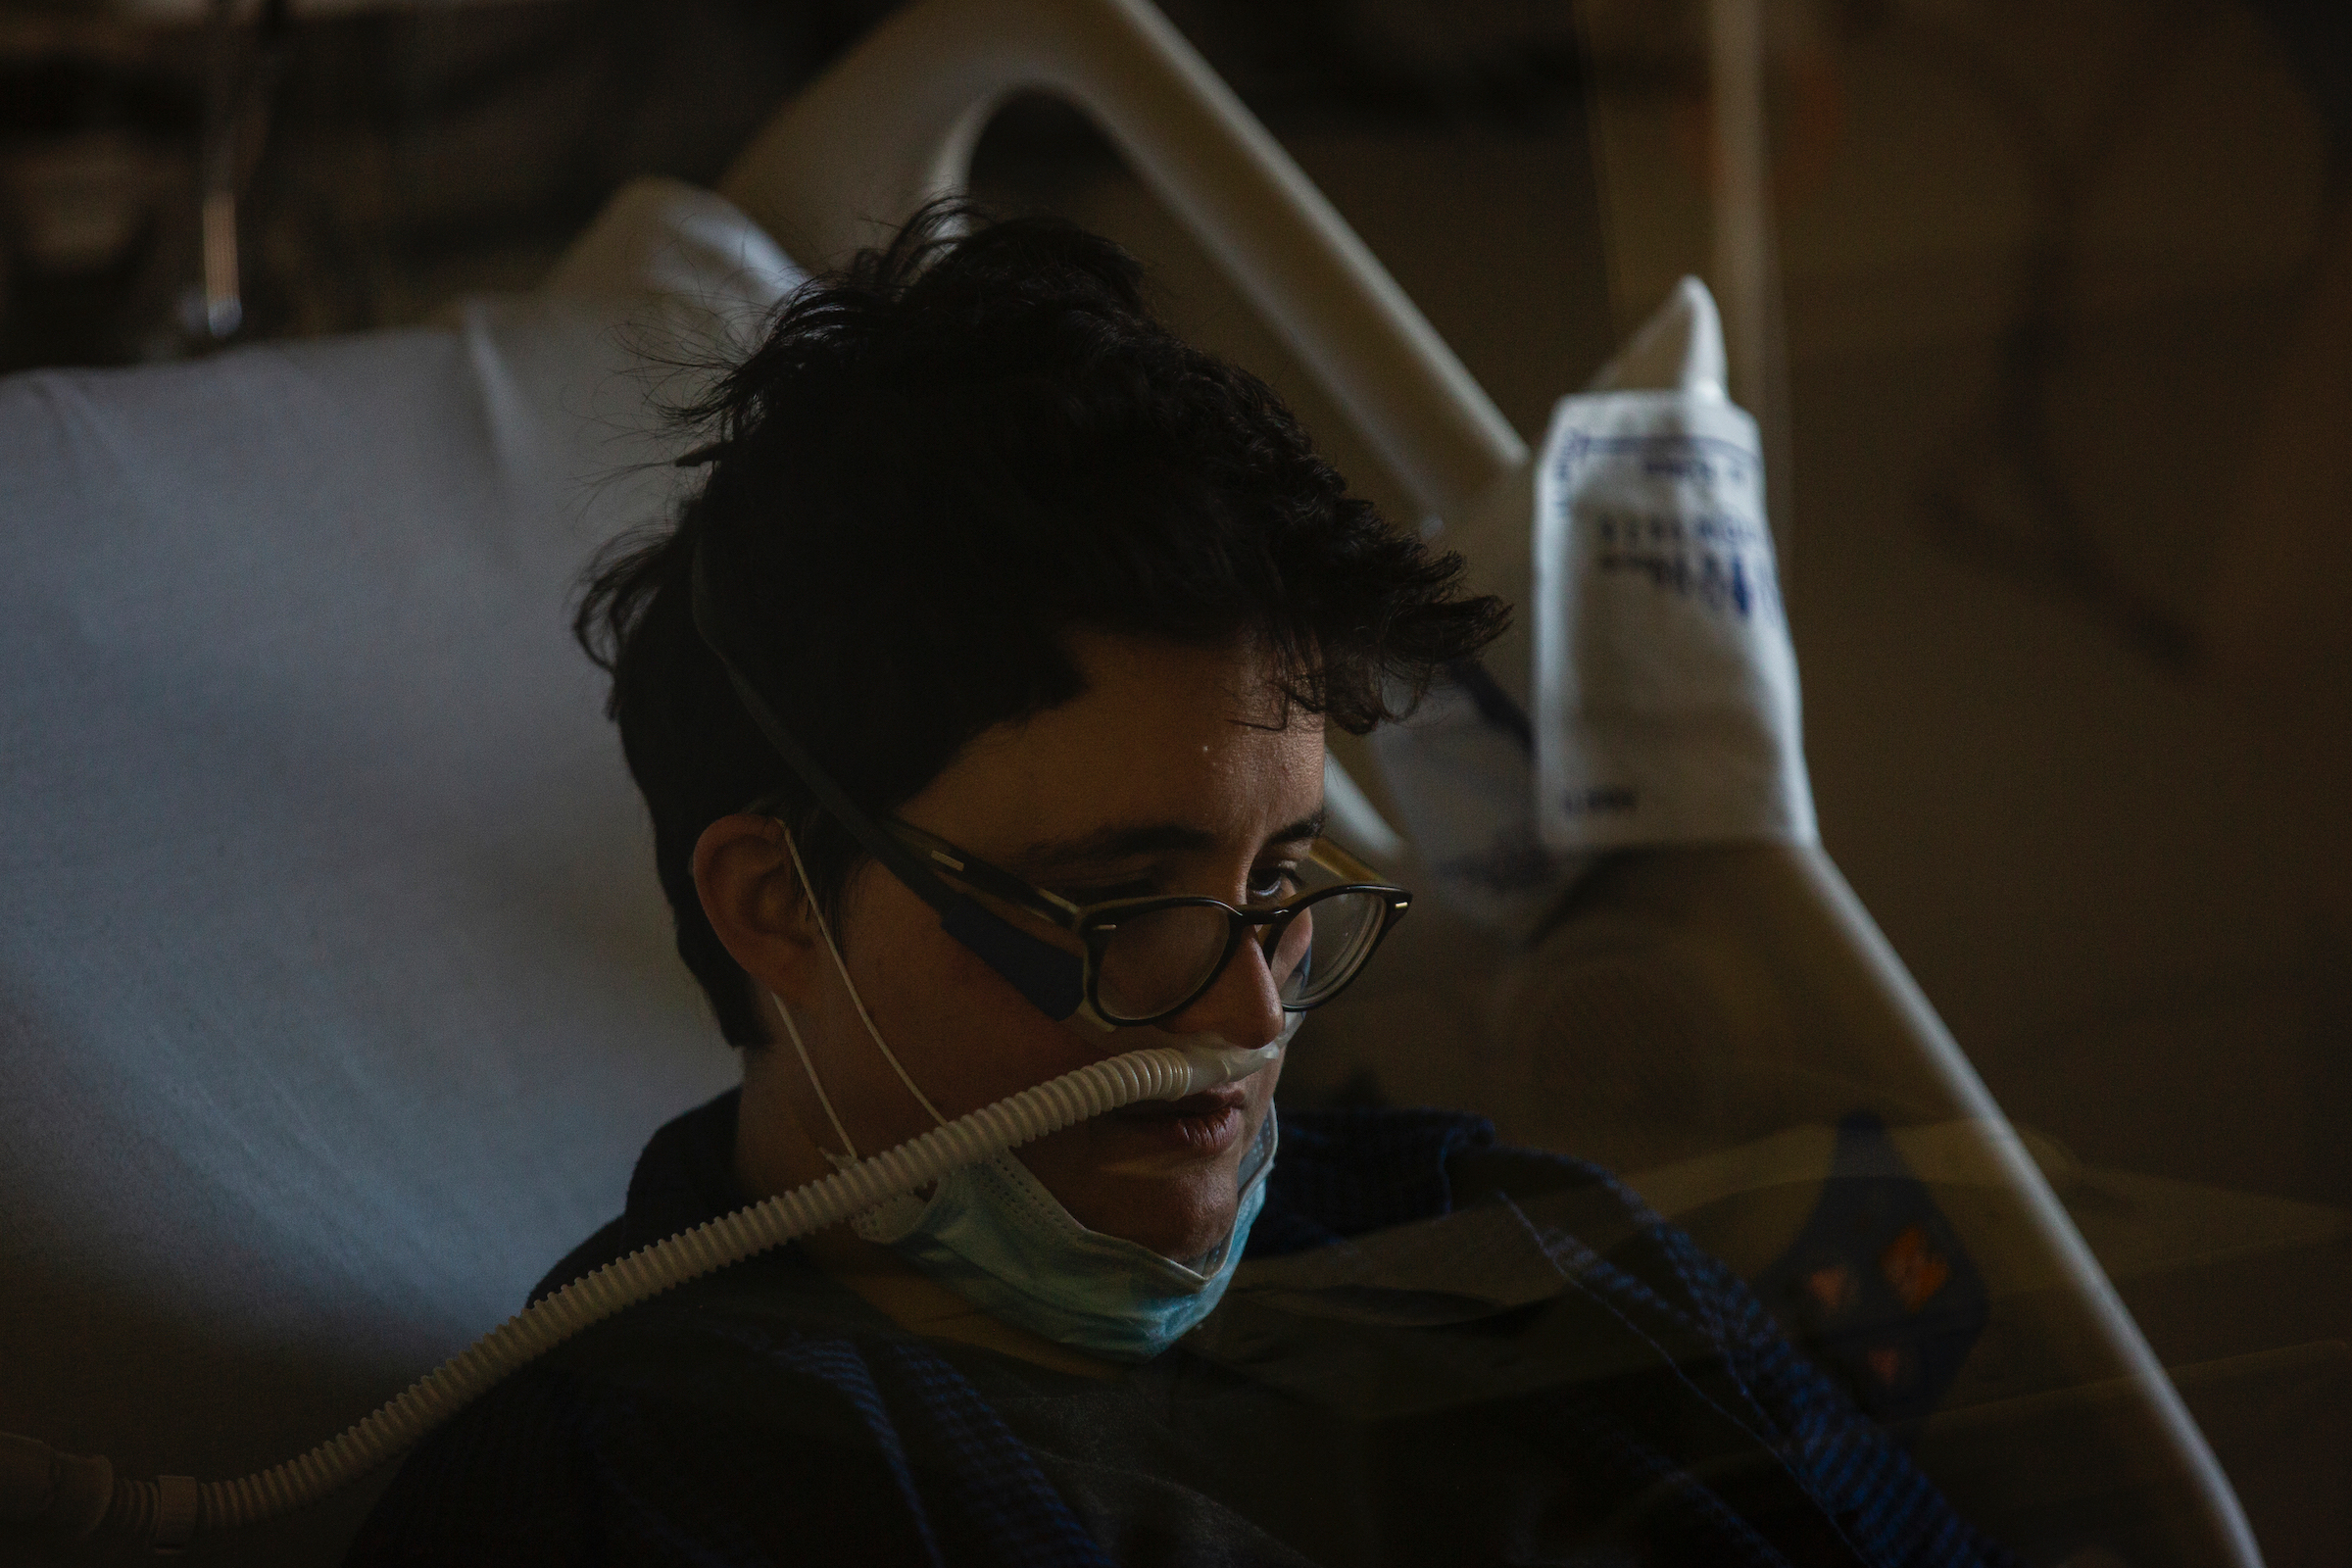 The hardest part is not being able to breathe. But also, the unknown.  Dr. Laura Mulvey, photographed resting in her isolation unit at Maimonides Medical Center in Brooklyn on March 26, was discharged the next day.